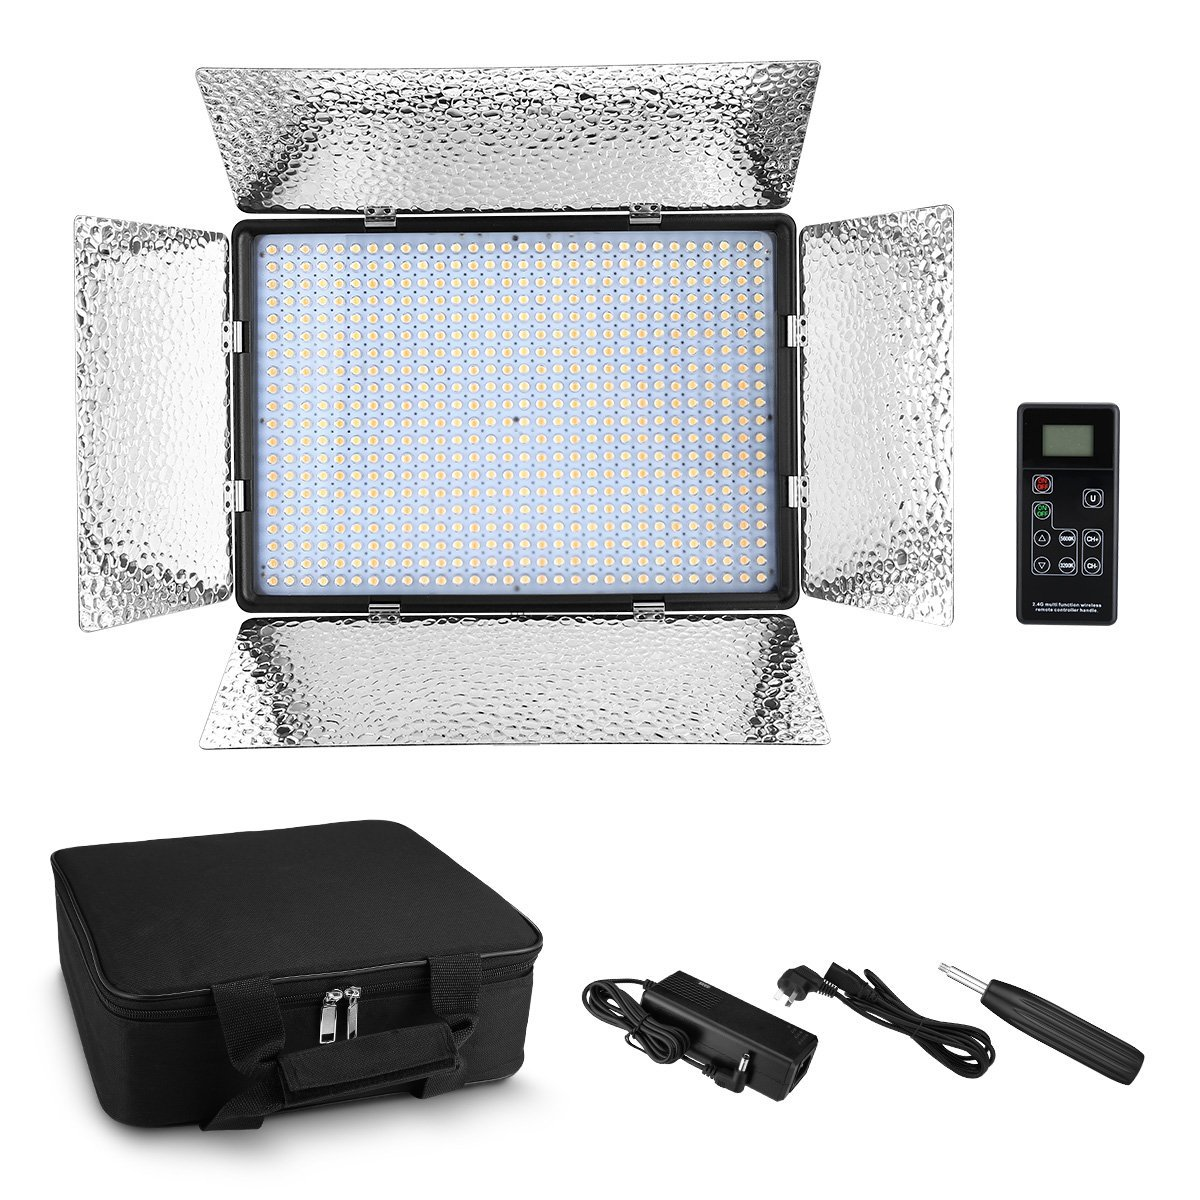 Powerextra 600 Beads Bi Color Dimmable Led Video Light